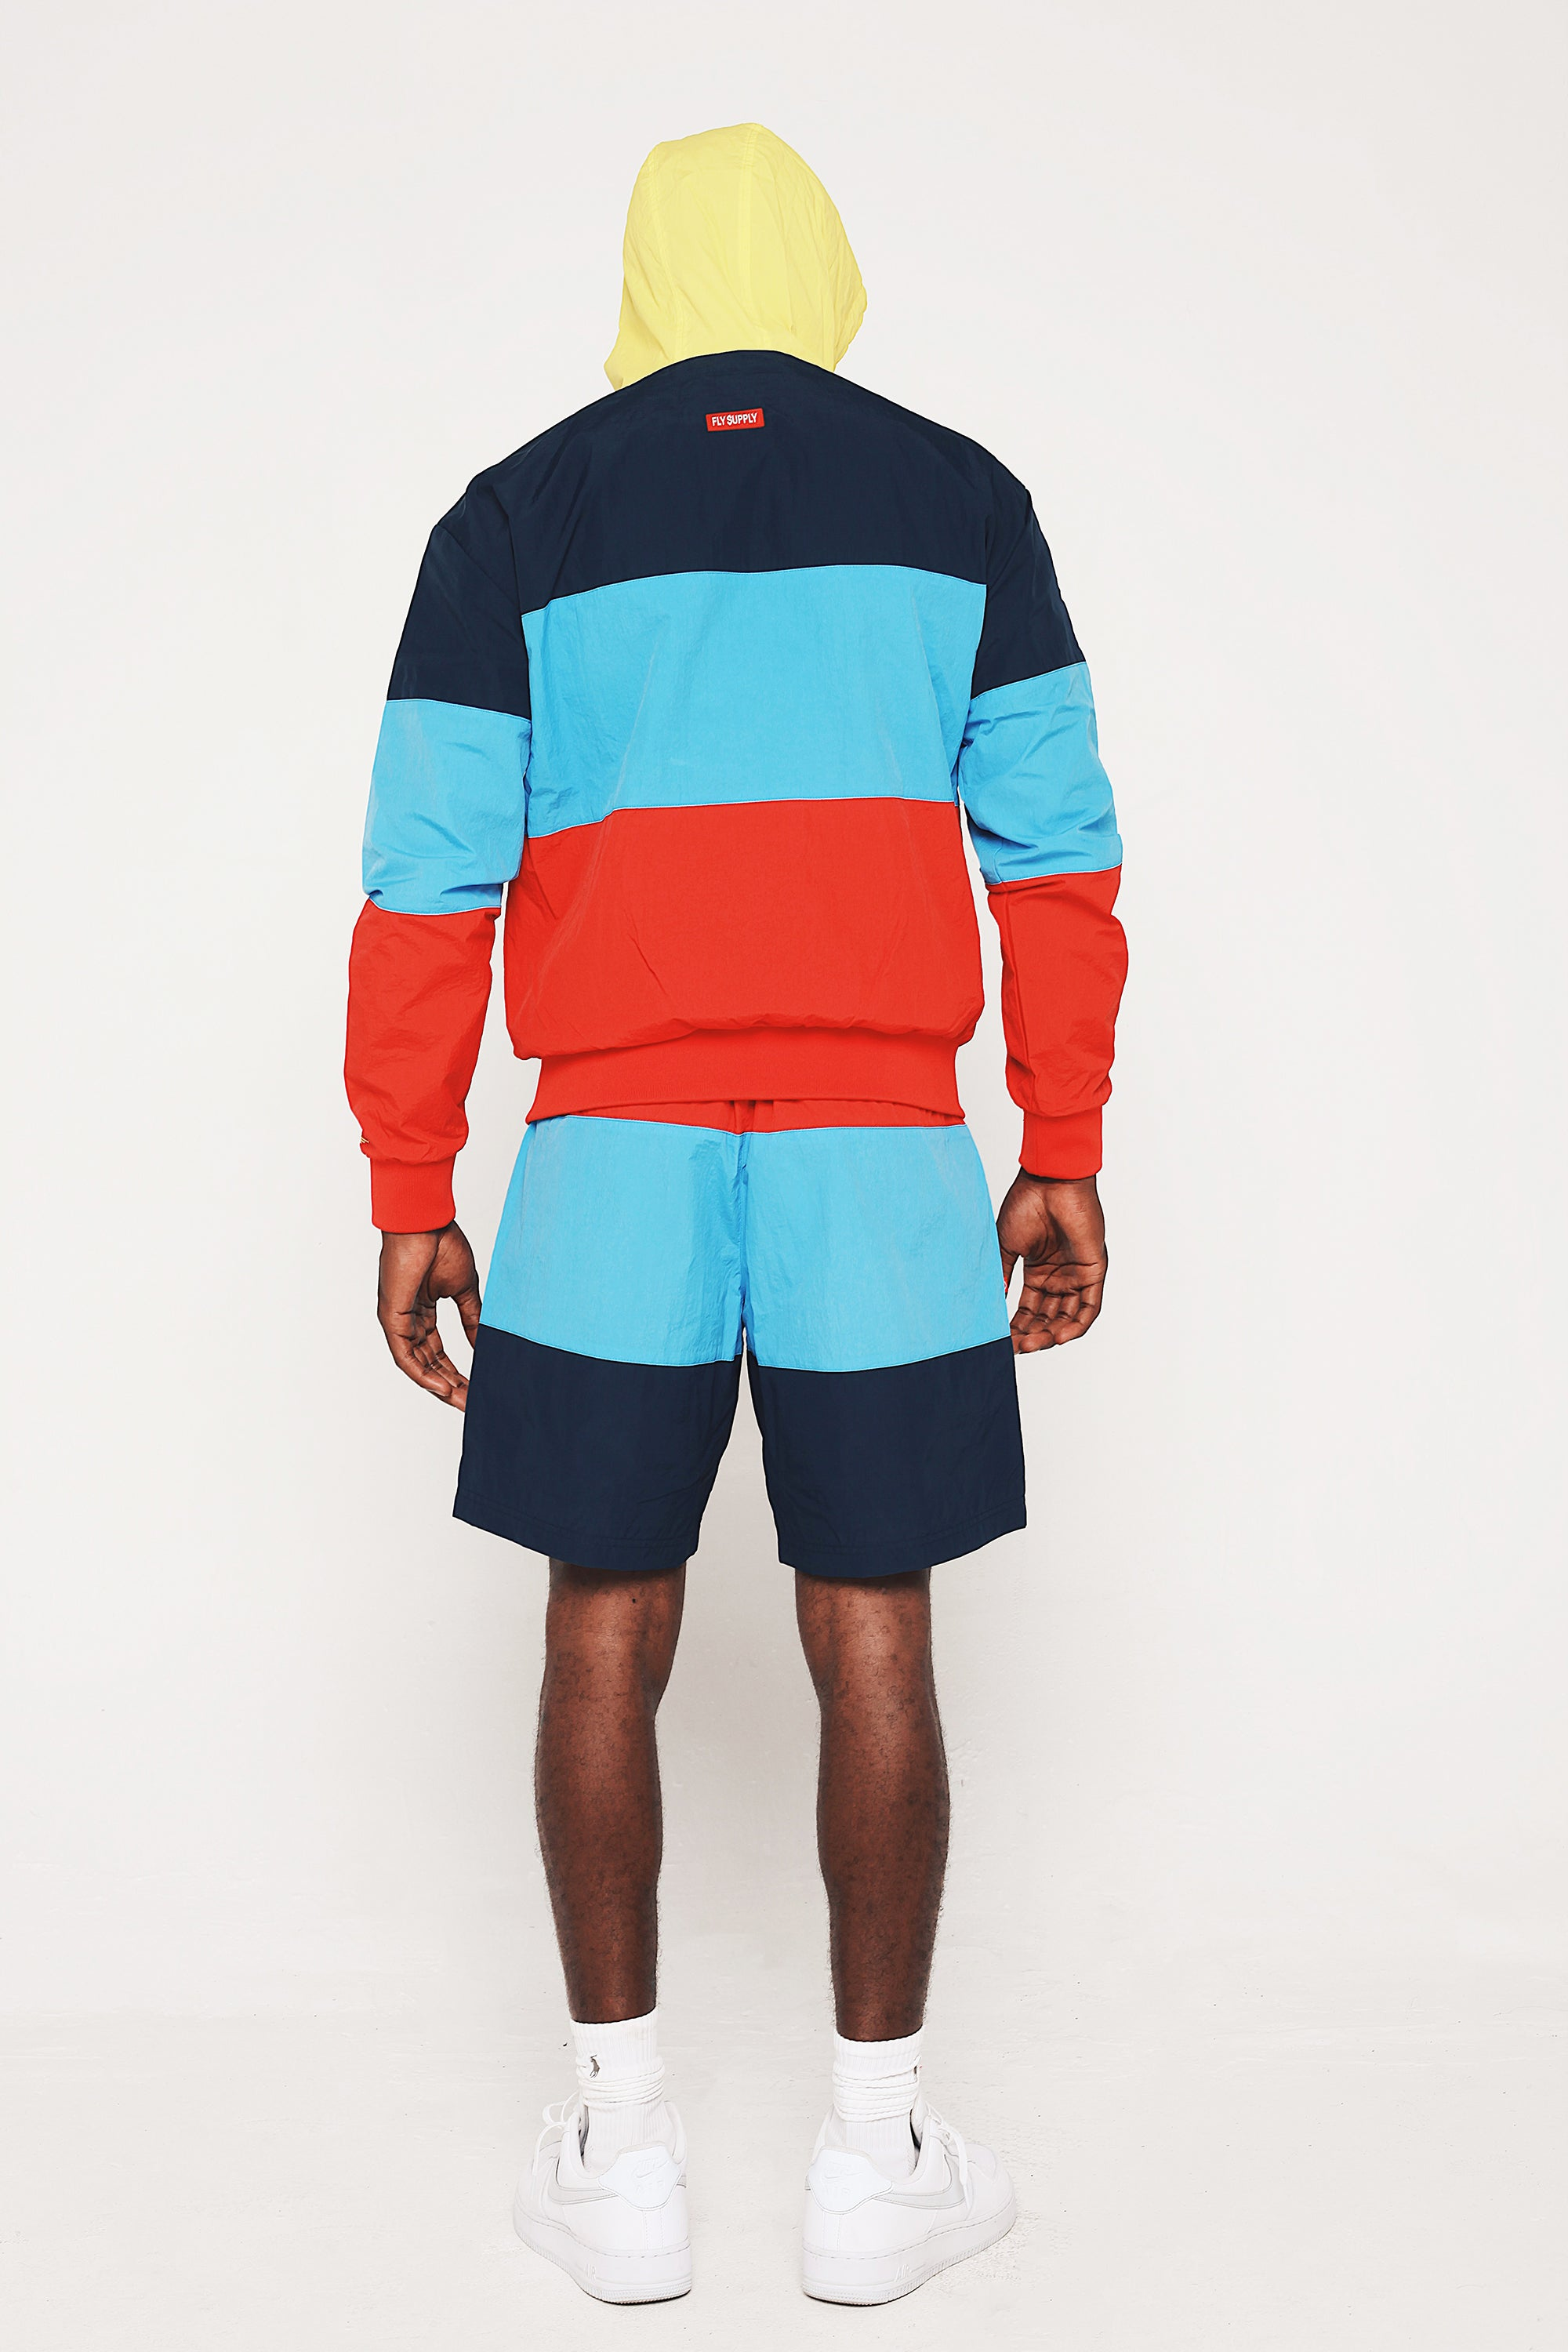 GOATS Colorblock Shorts